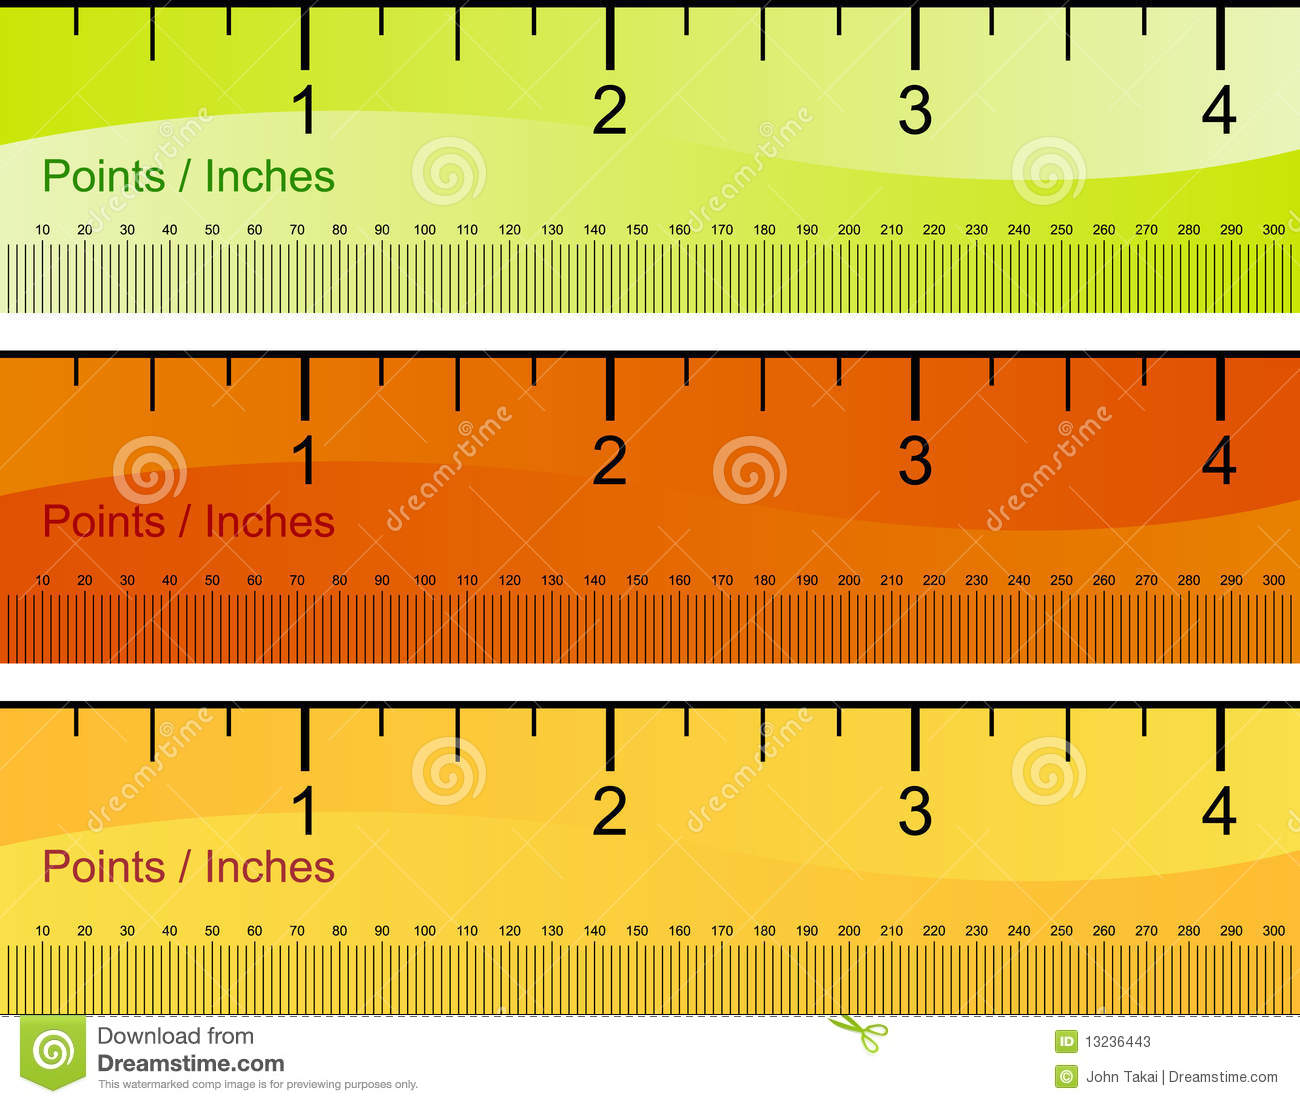 Points Inches Ruler Set Stock Vector Illustration Of Inches